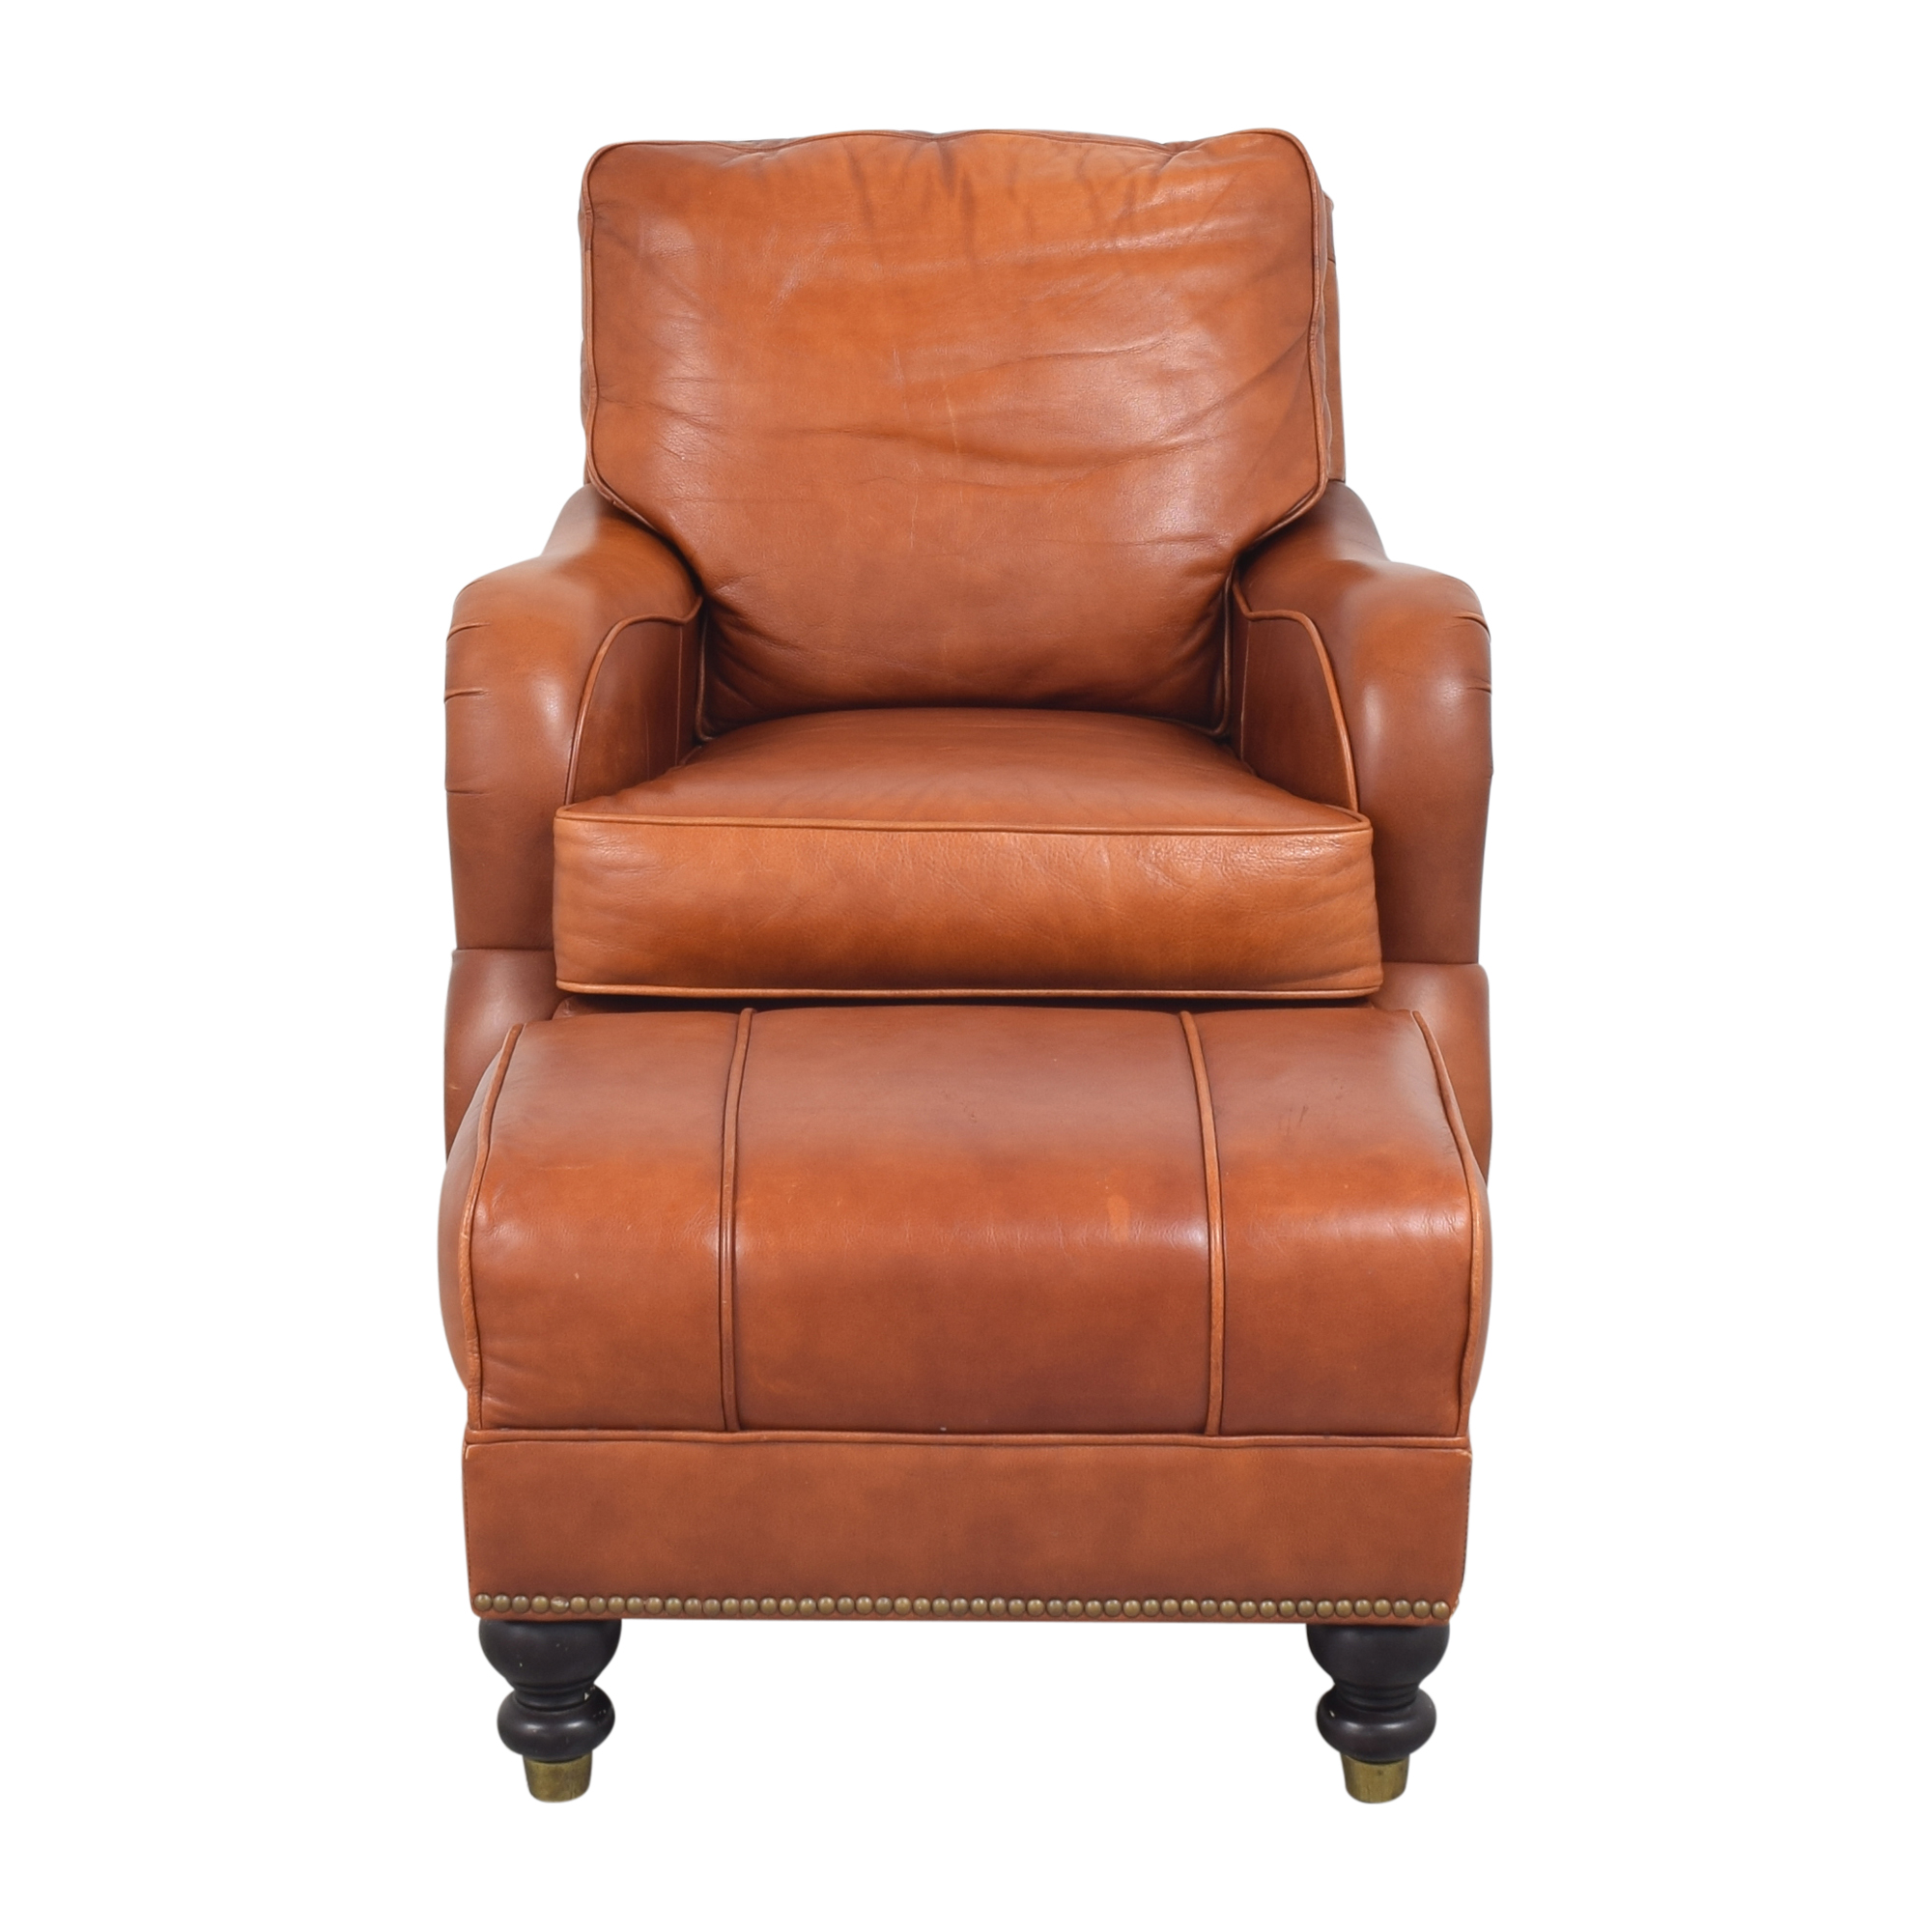 Ballard Designs Ballard Designs Arm Chair with Ottoman brown